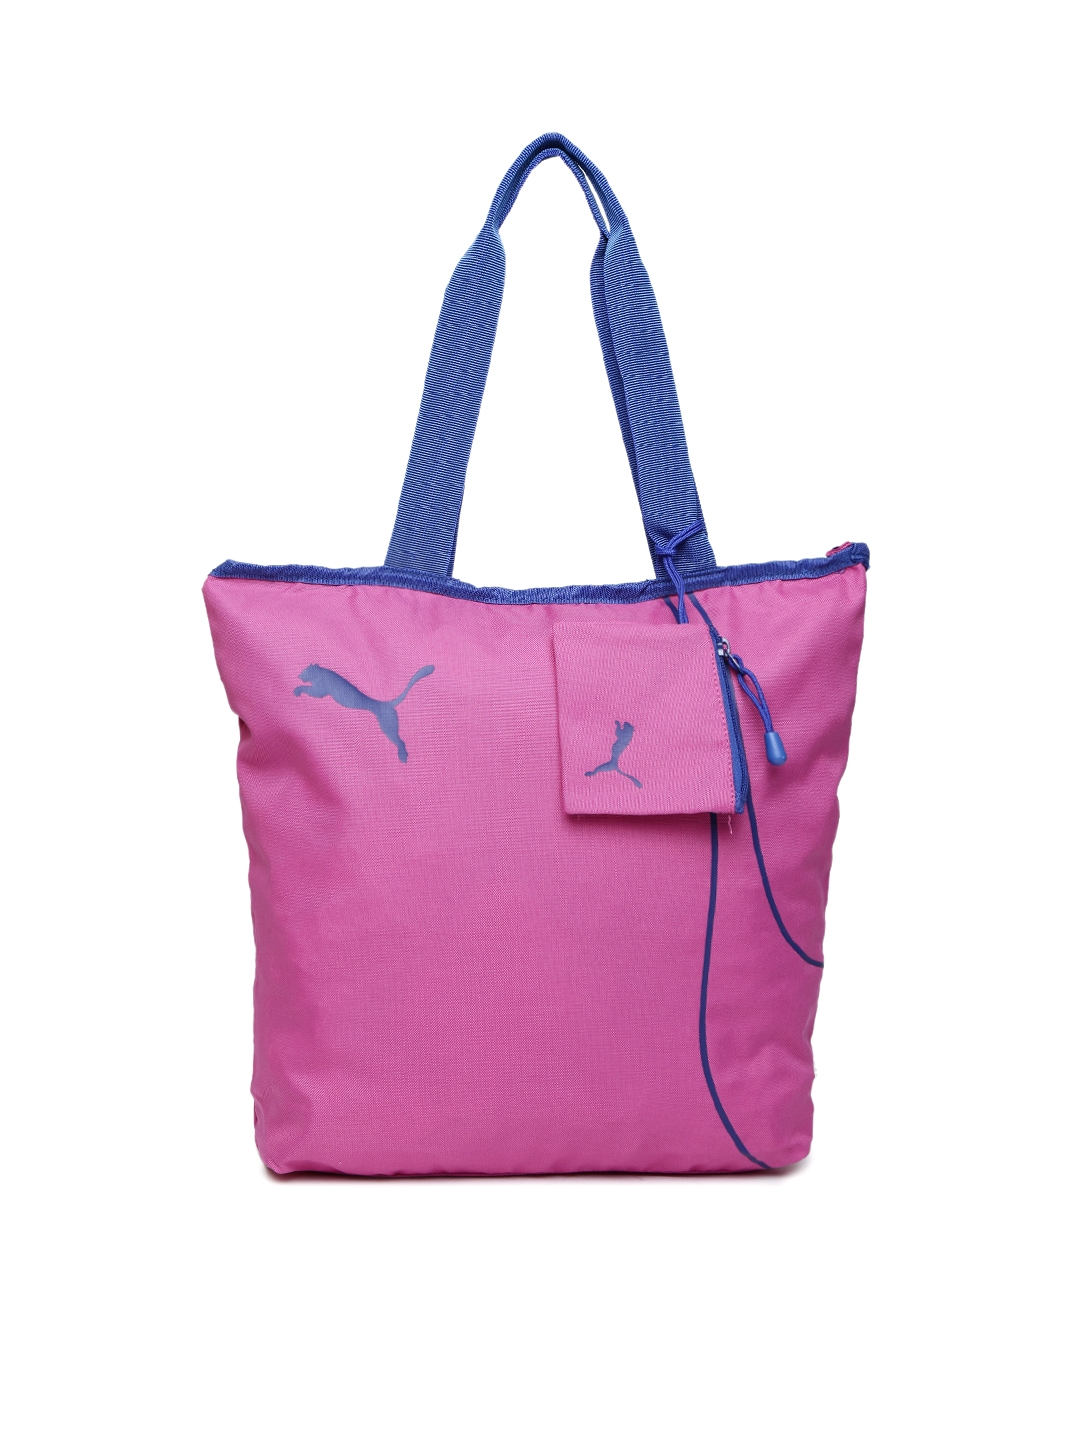 b7fbf9b743d7 puma tote bag purple Sale